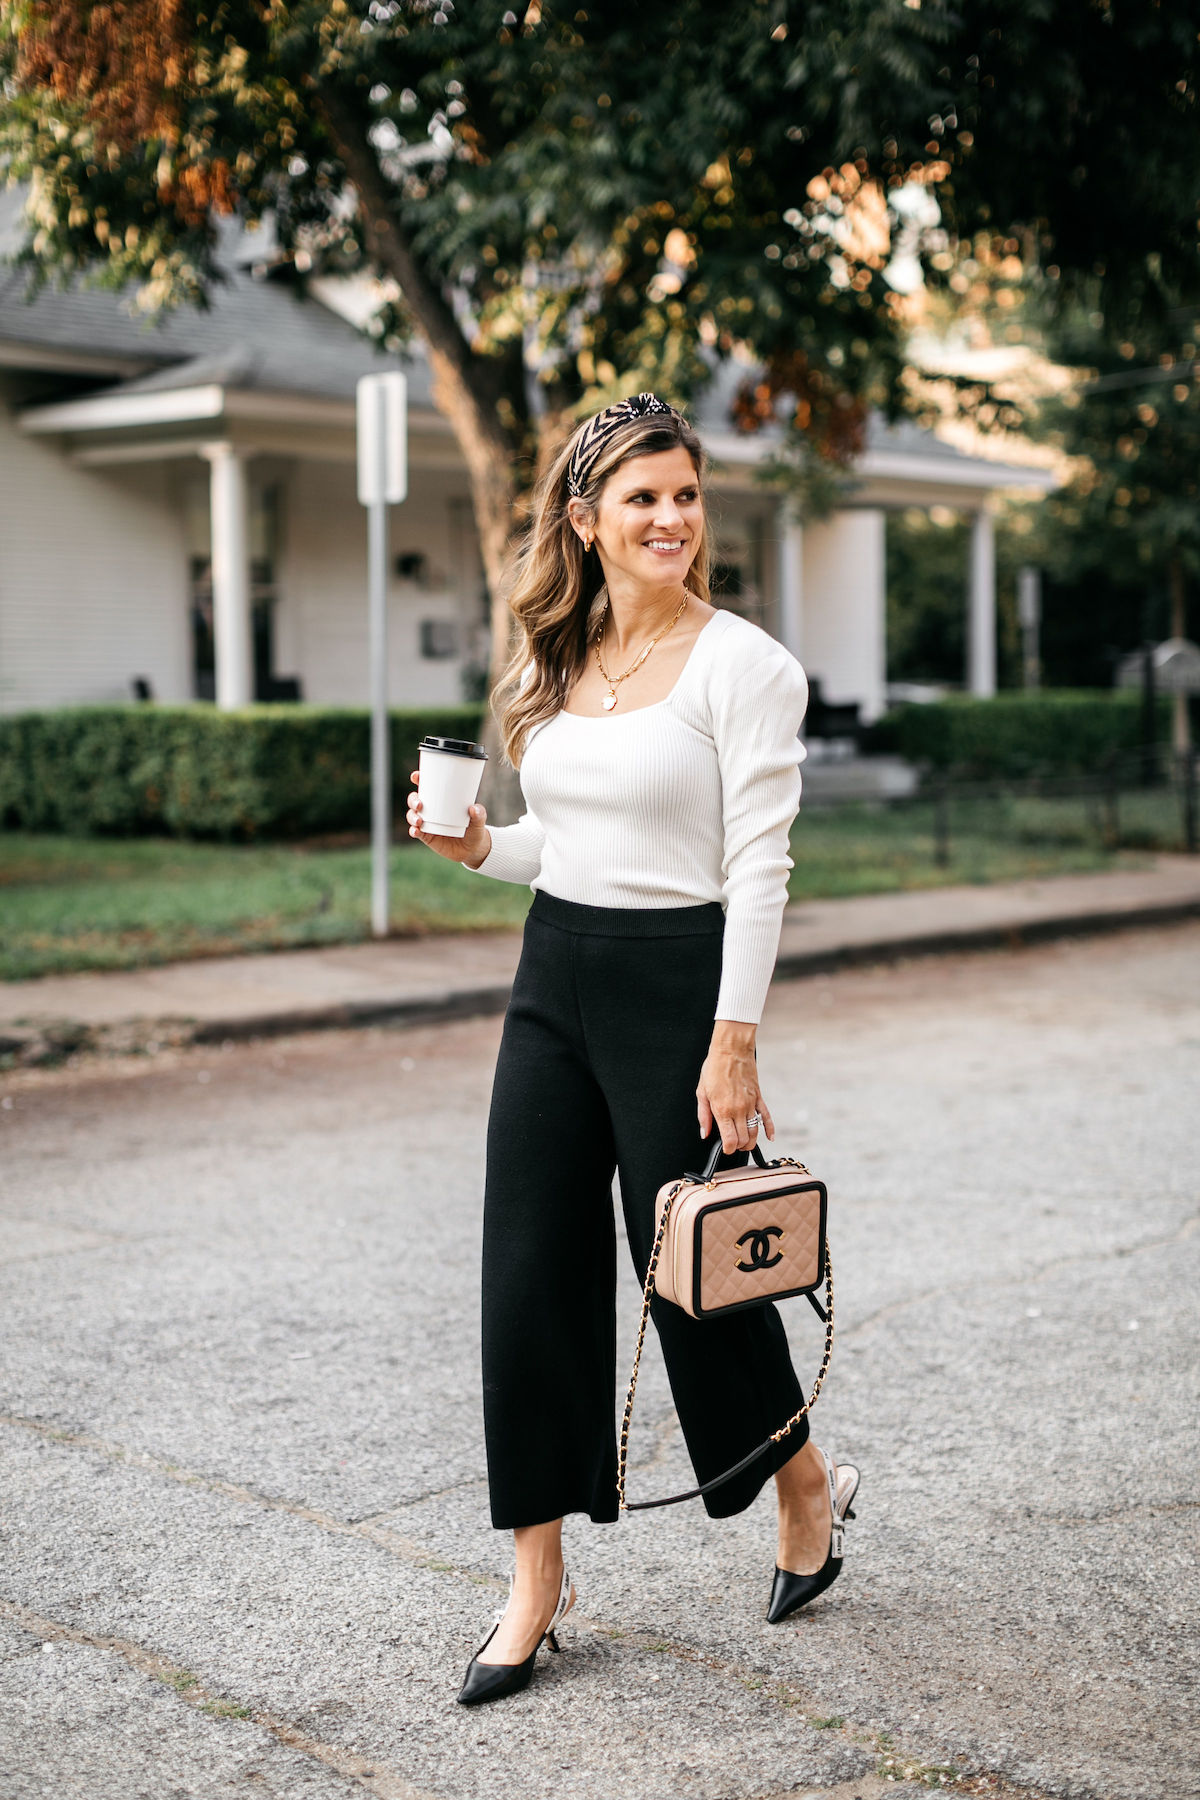 work outfit brighton butler wearing jcrew black pants and cream sweater businss casual 1a